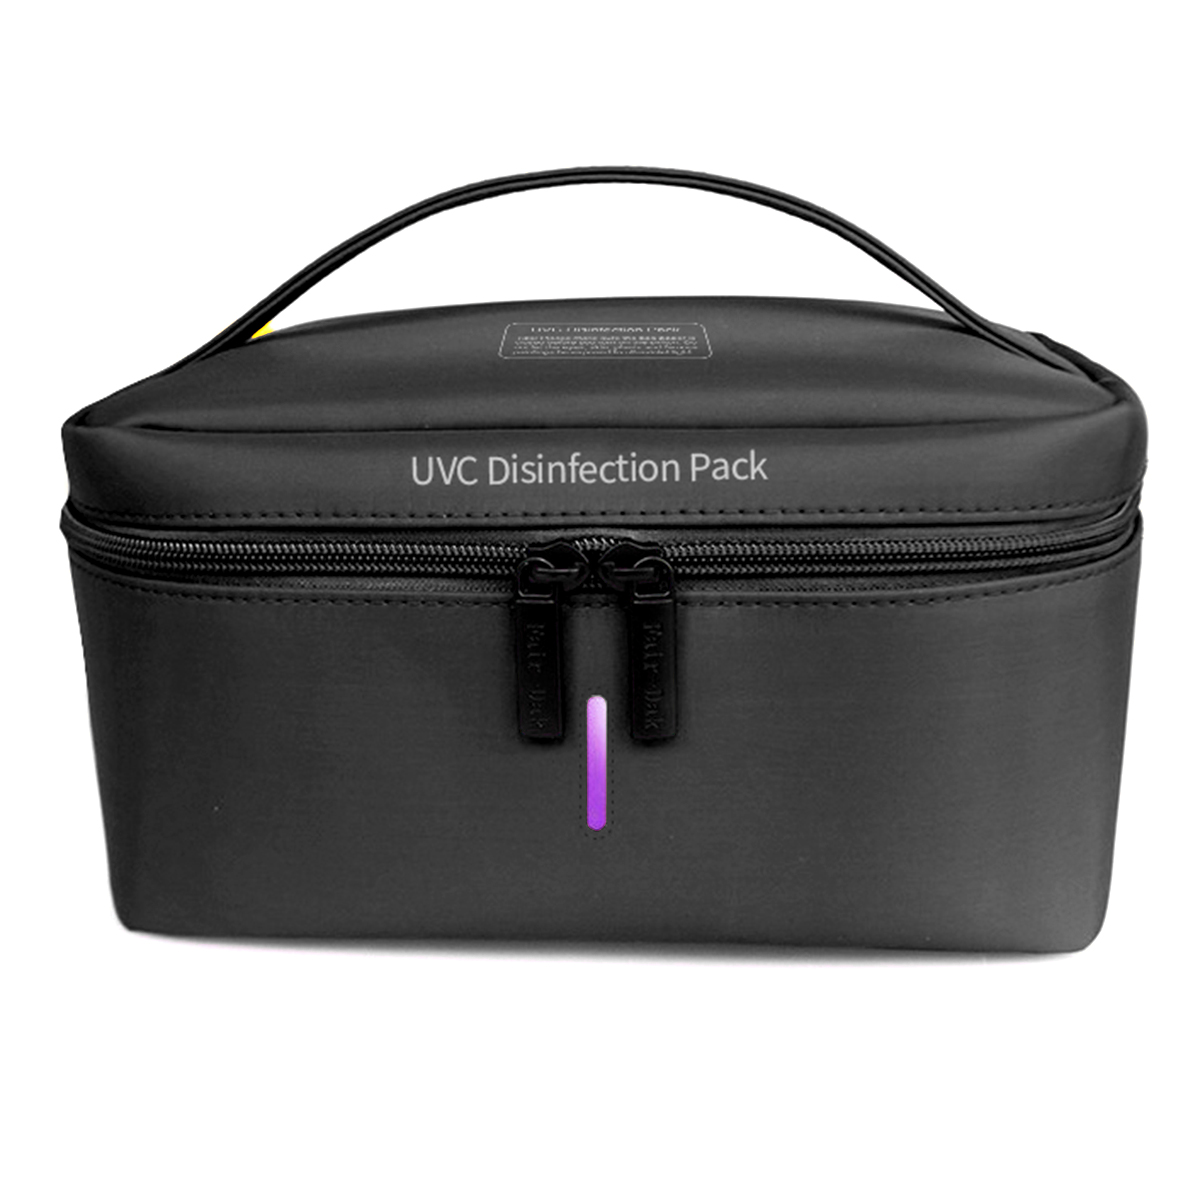 Portable UV Sterilizer Bag Uvc Disinfect Pack Clothes Sterilization Bag Phone Mask Sterilizer Box LED UVC Disinfection Lamp